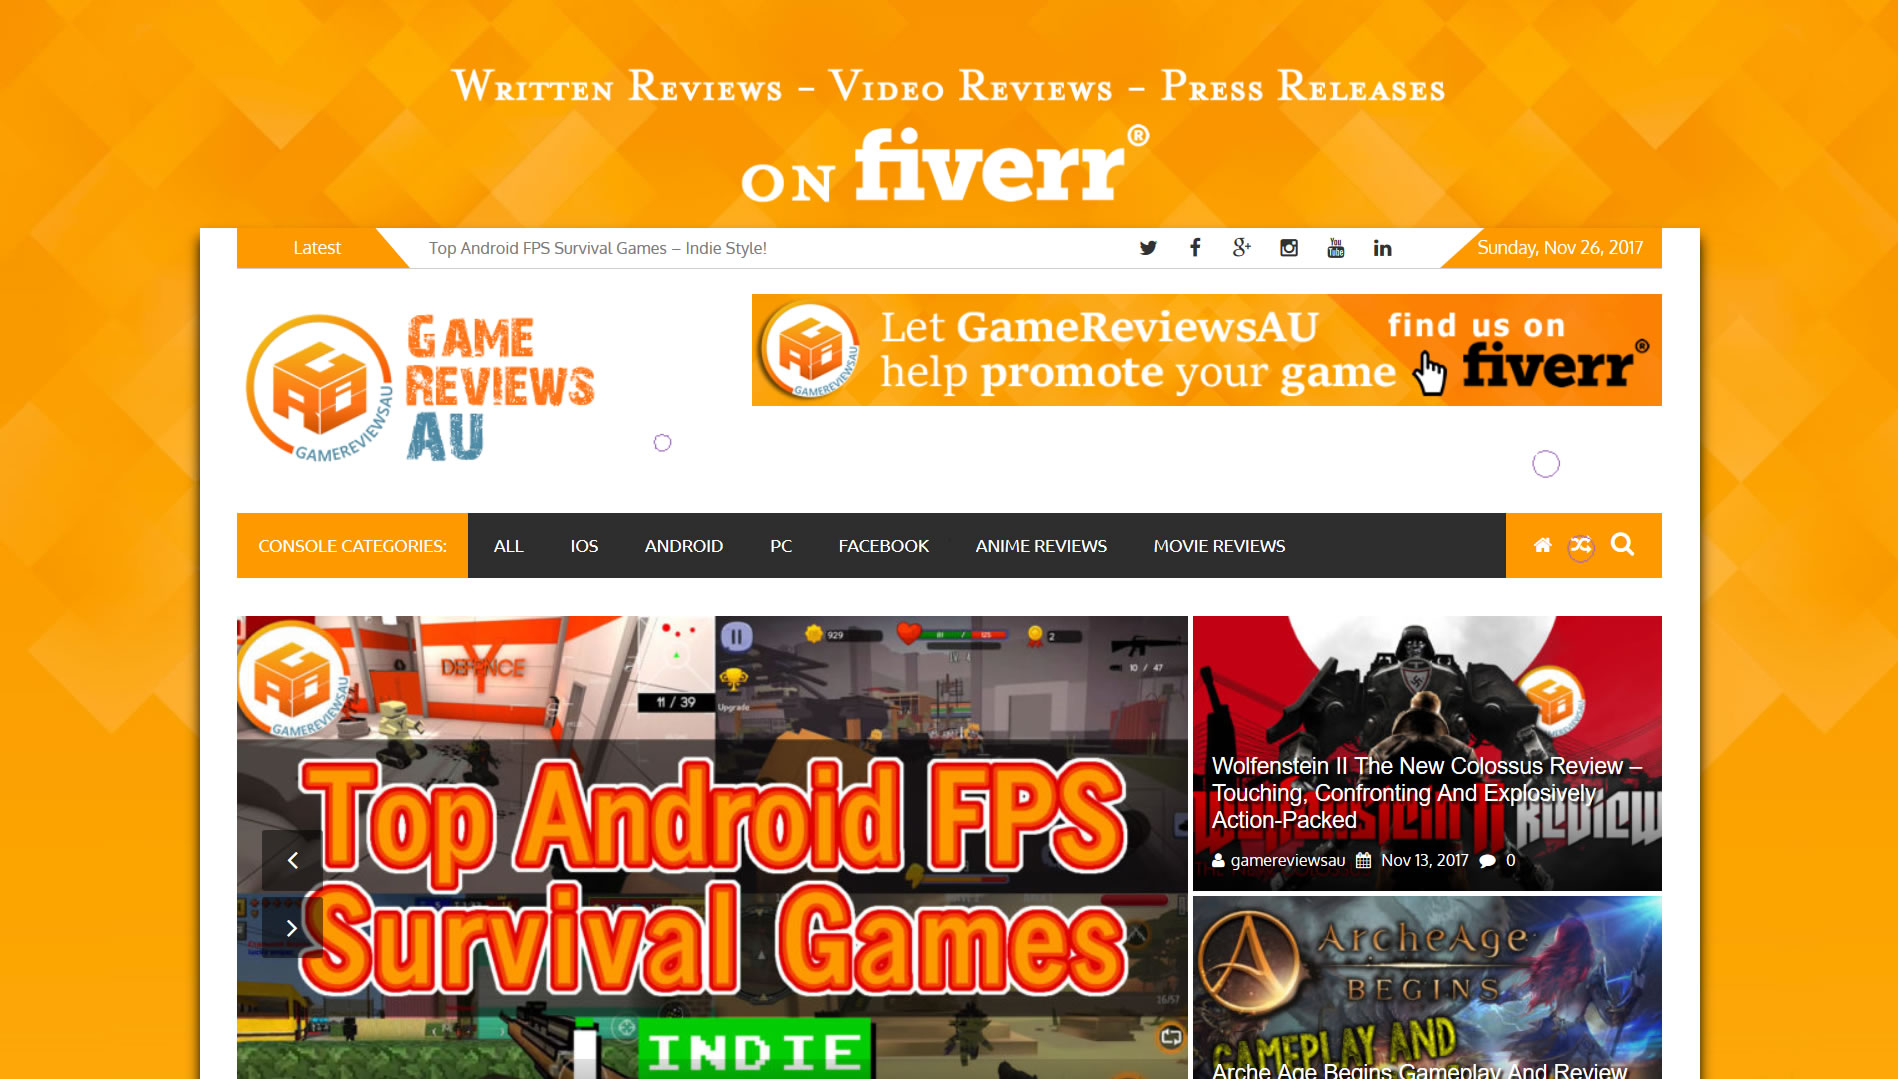 GameReviewsAU